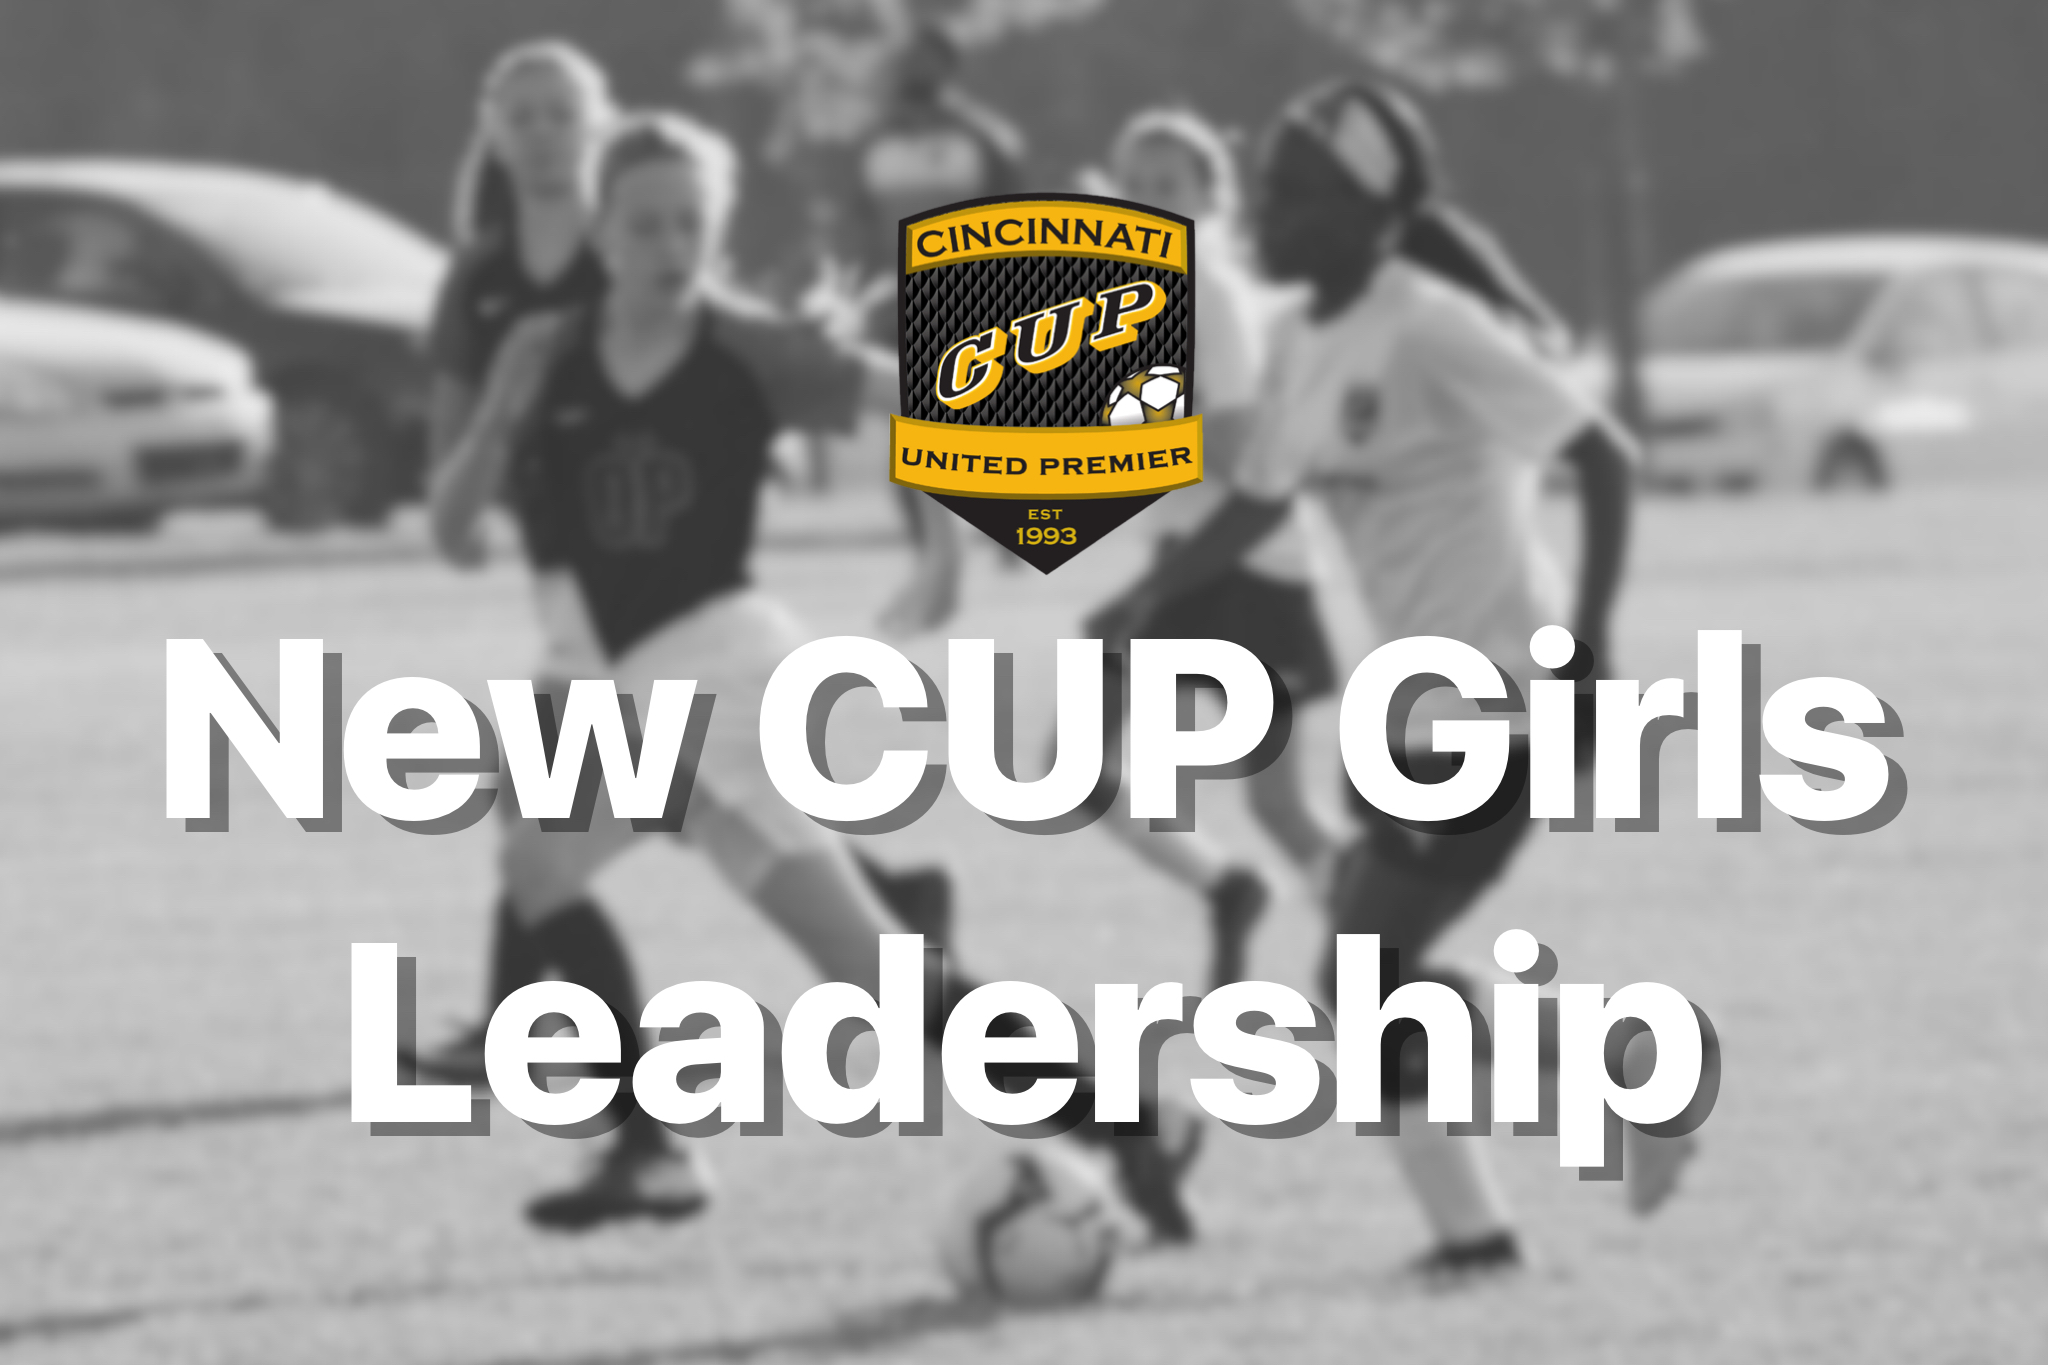 CU Announces New CUP Girls Leadership